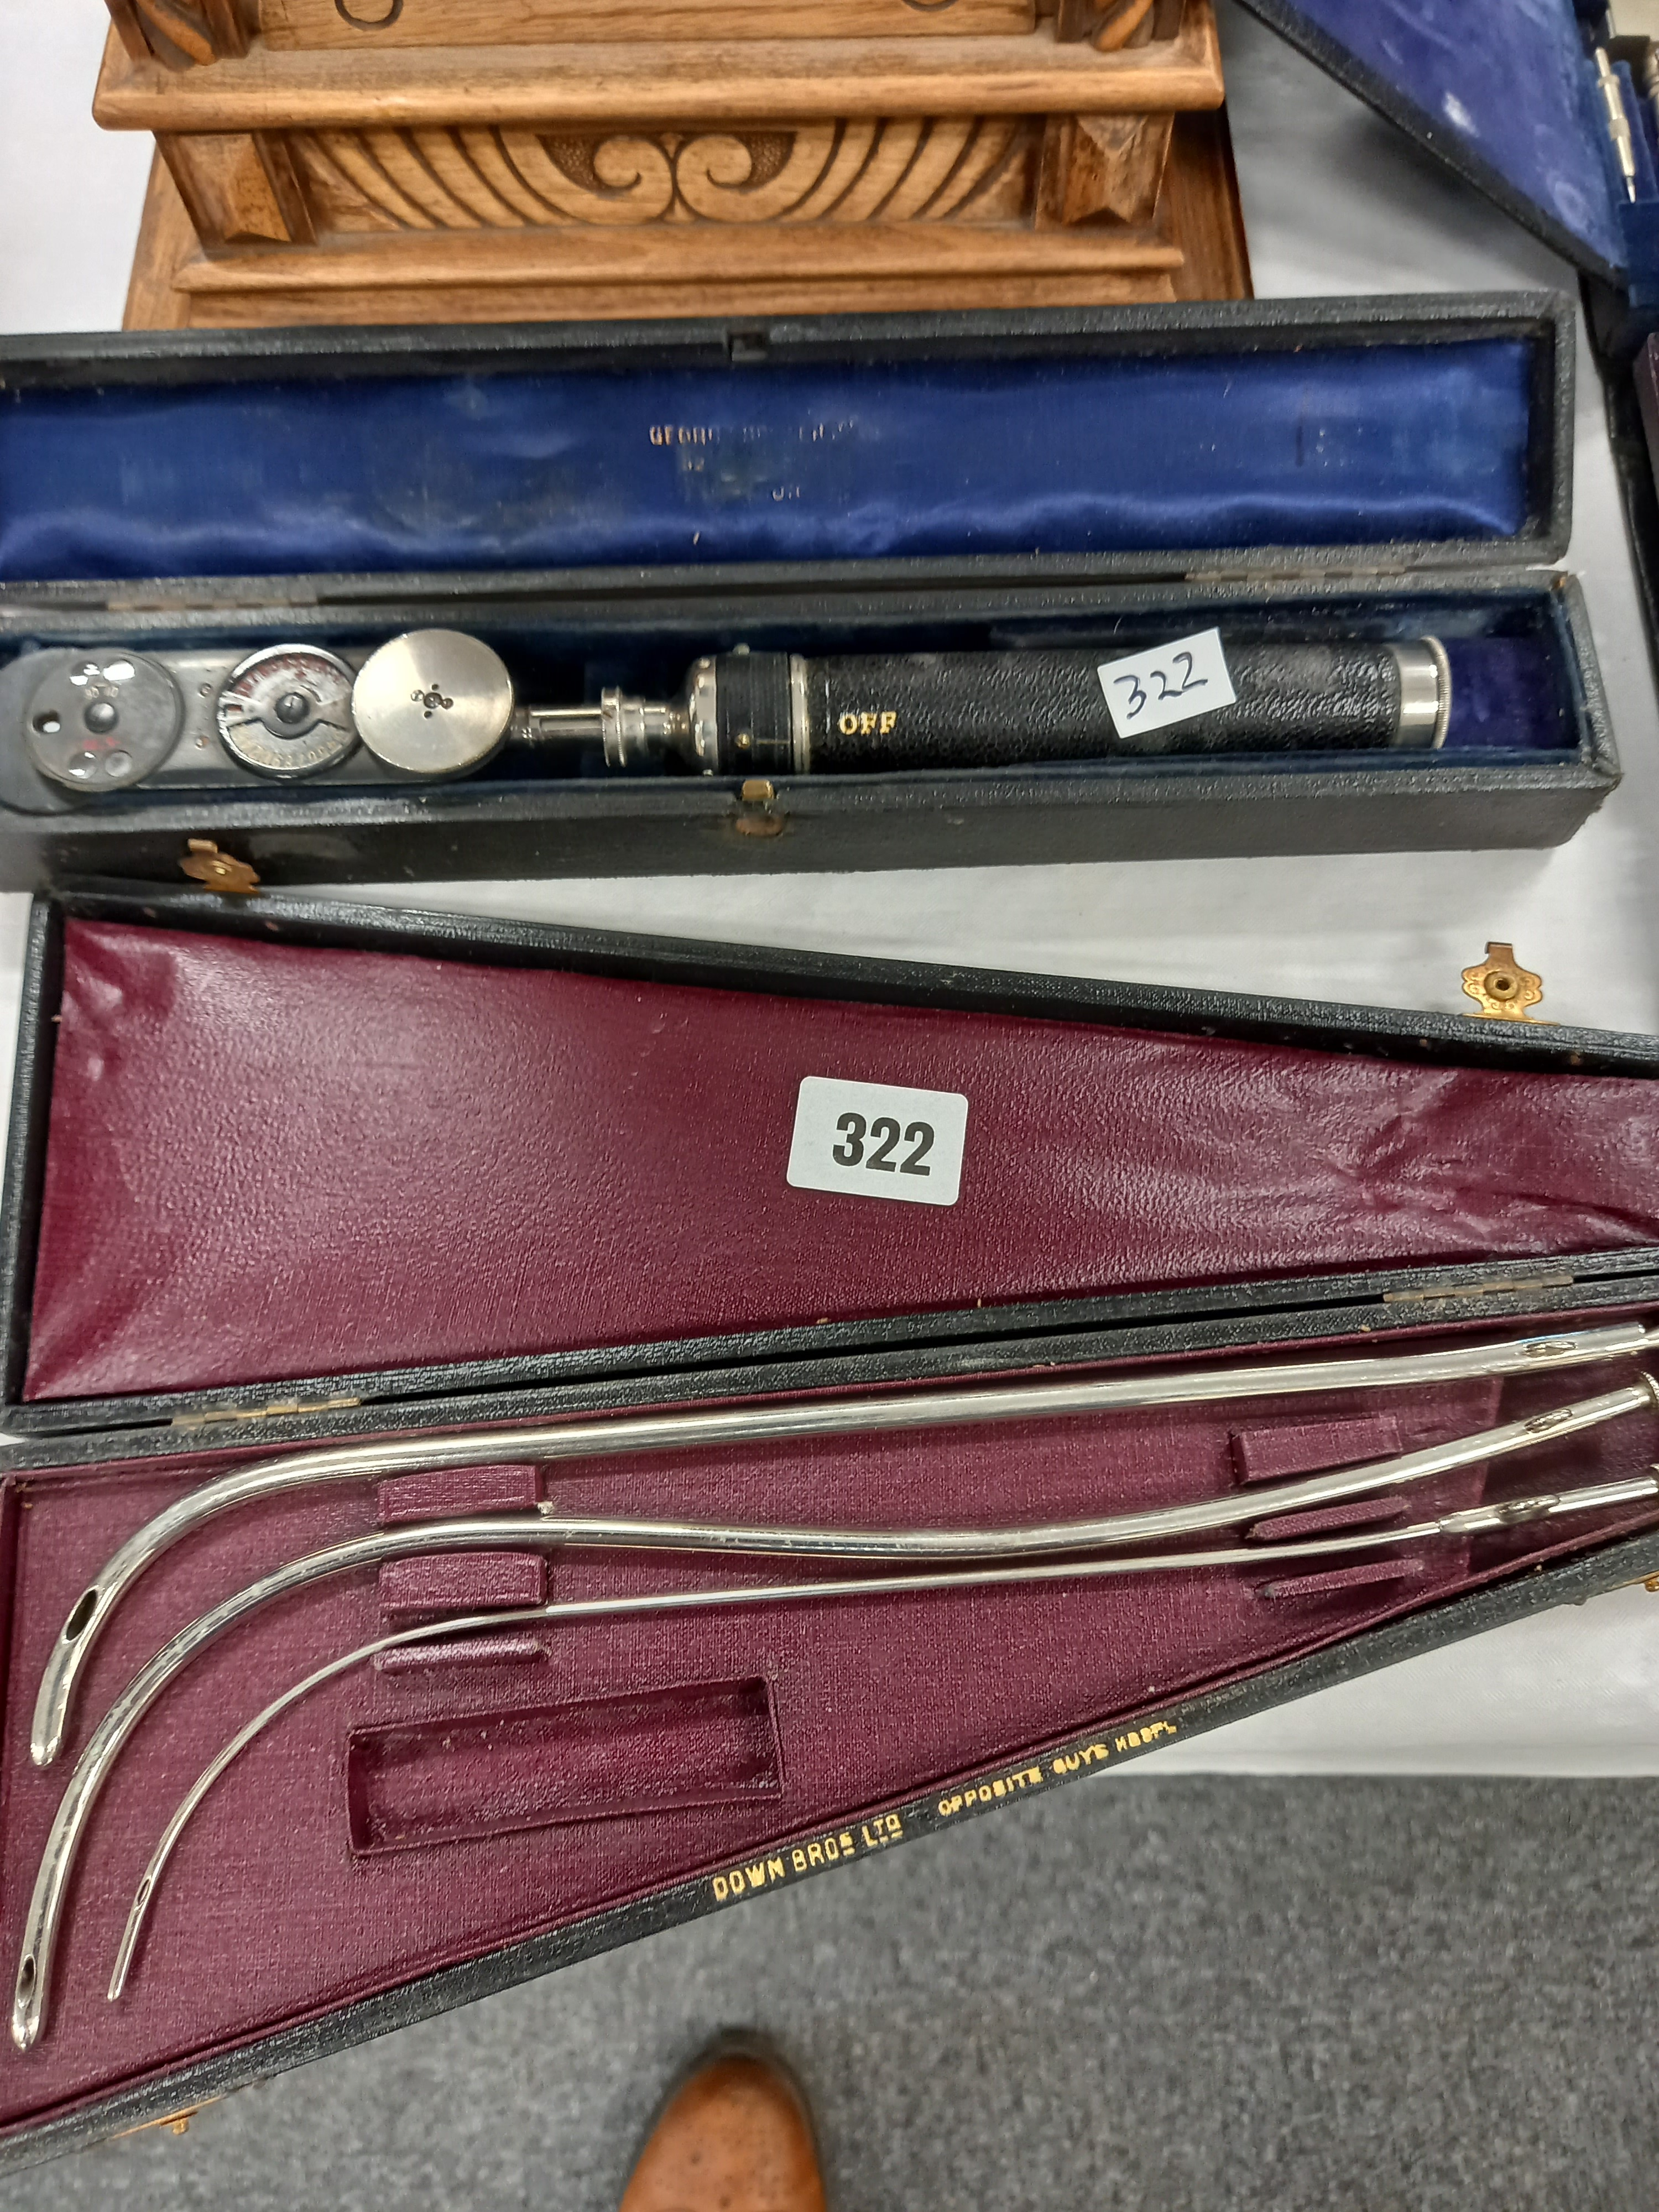 2 BOXES OF MEDICAL INSTRUMENTS